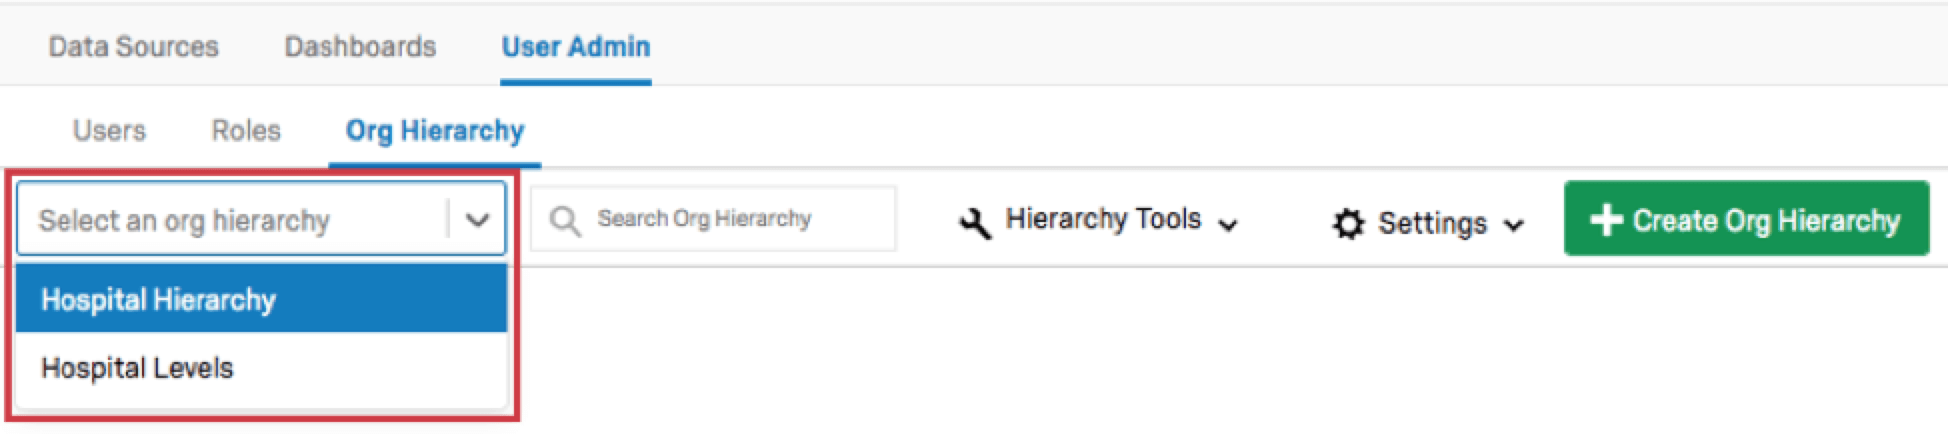 Hierarchy selection dropdown menu opened to reveal other hierarchies that can be selected